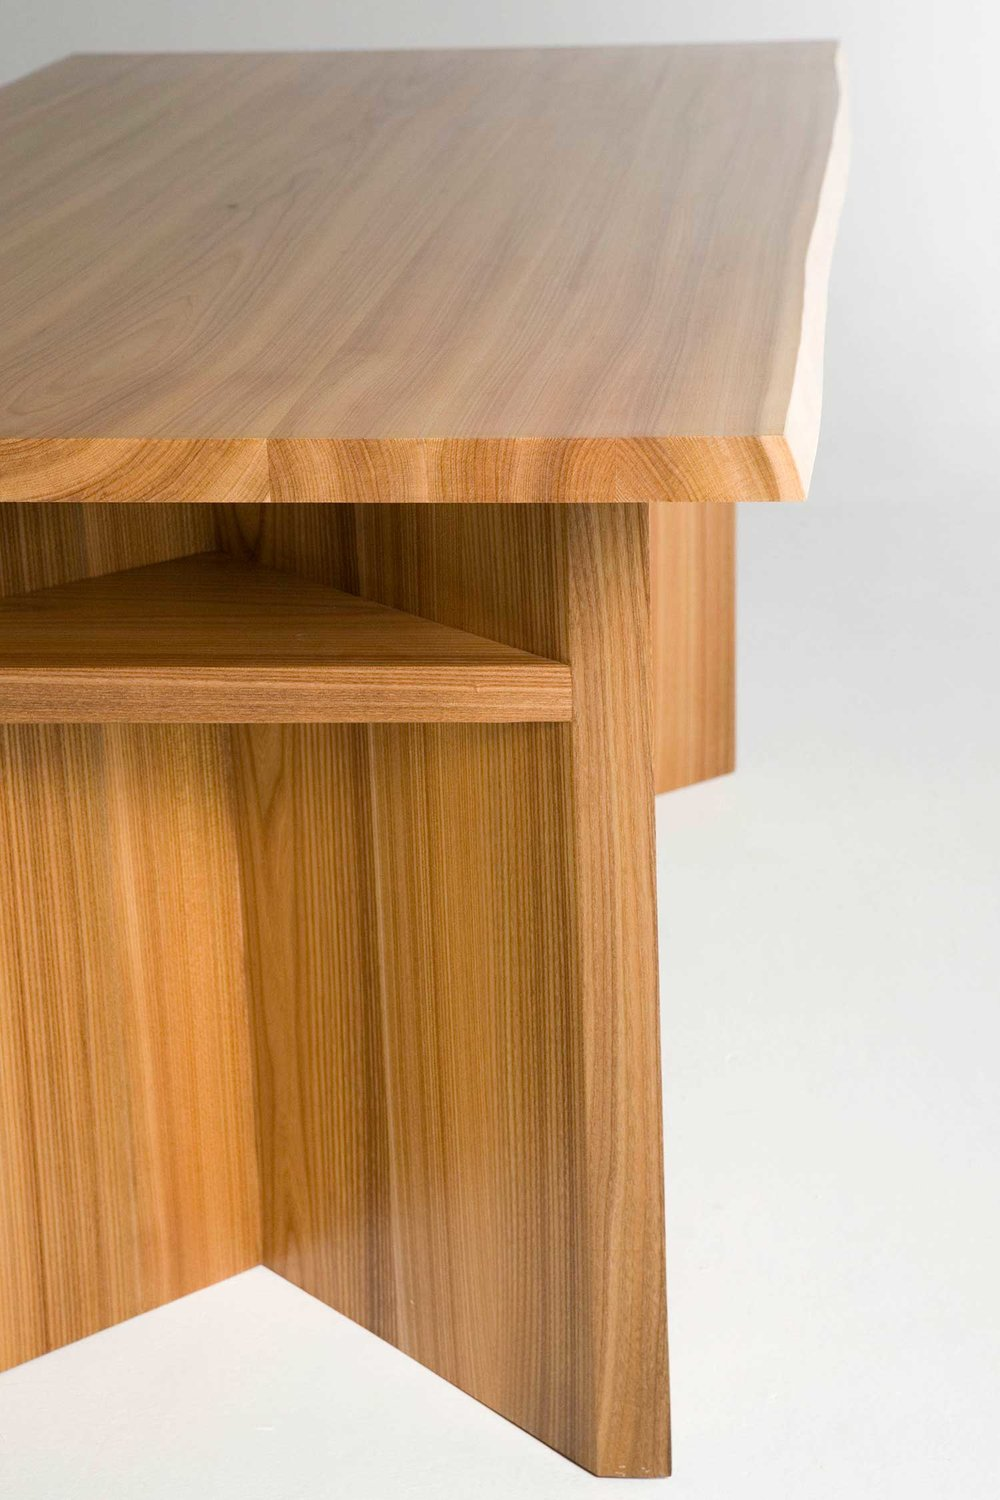 wickham-quartersawn-elm-table3.jpg